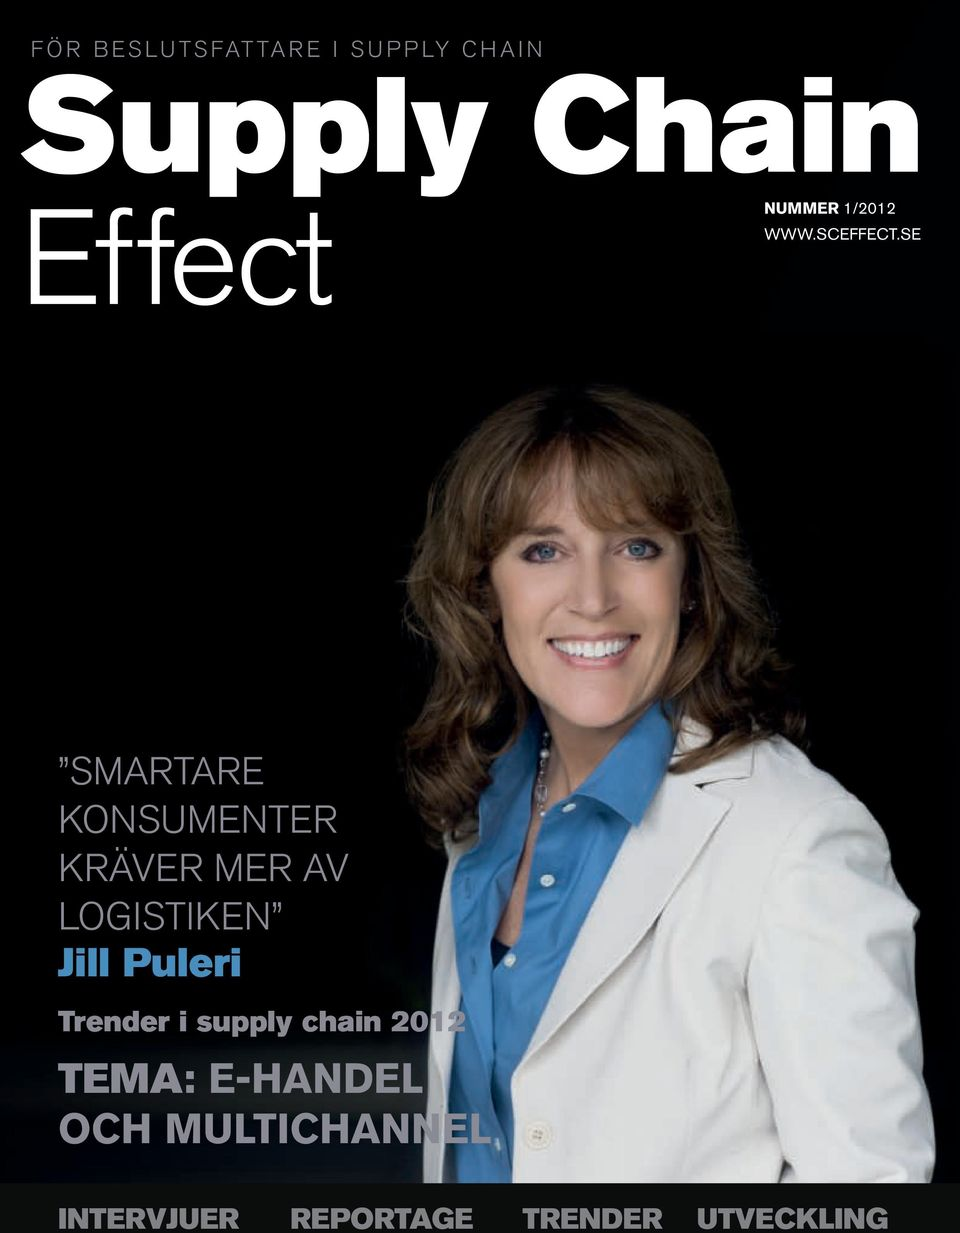 trender i supply chain 2012 tema: e-handel och multichannel